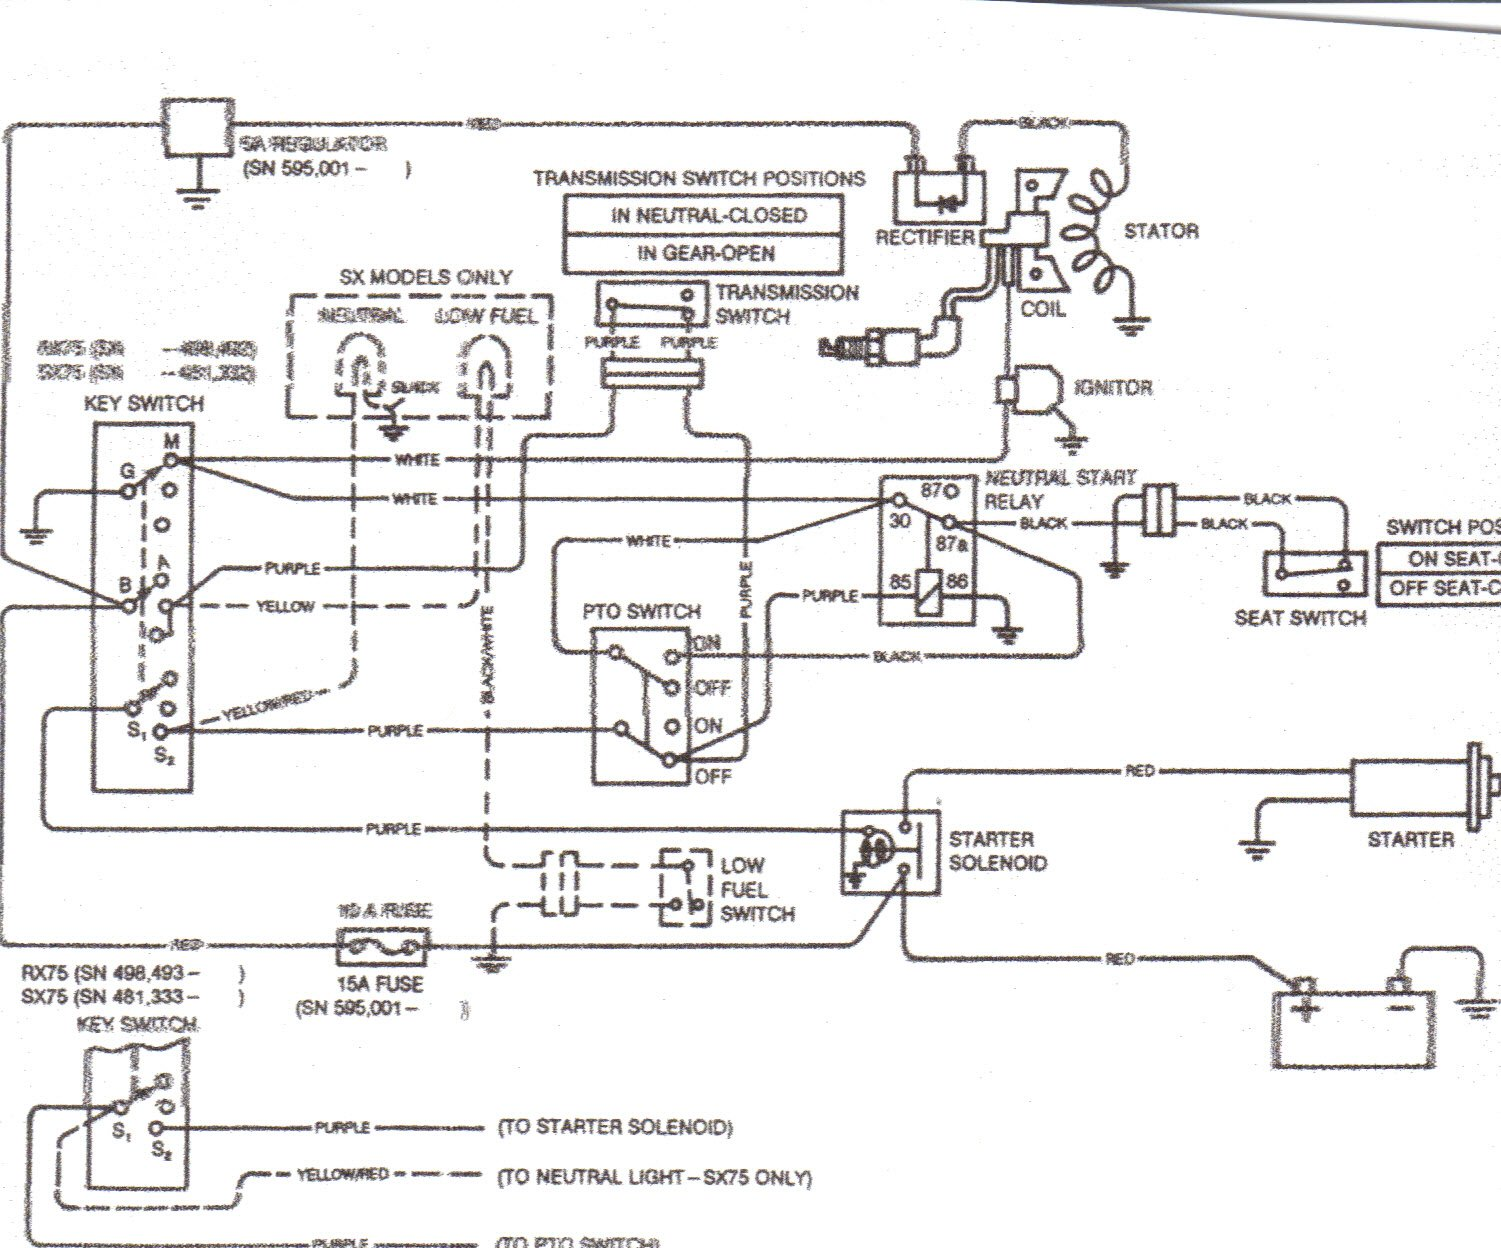 2010 07 03_172725_7 2 2010_12;25;50_PM wiring diagram for a john deere 6400 the wiring diagram john deere 190c wiring diagram at aneh.co